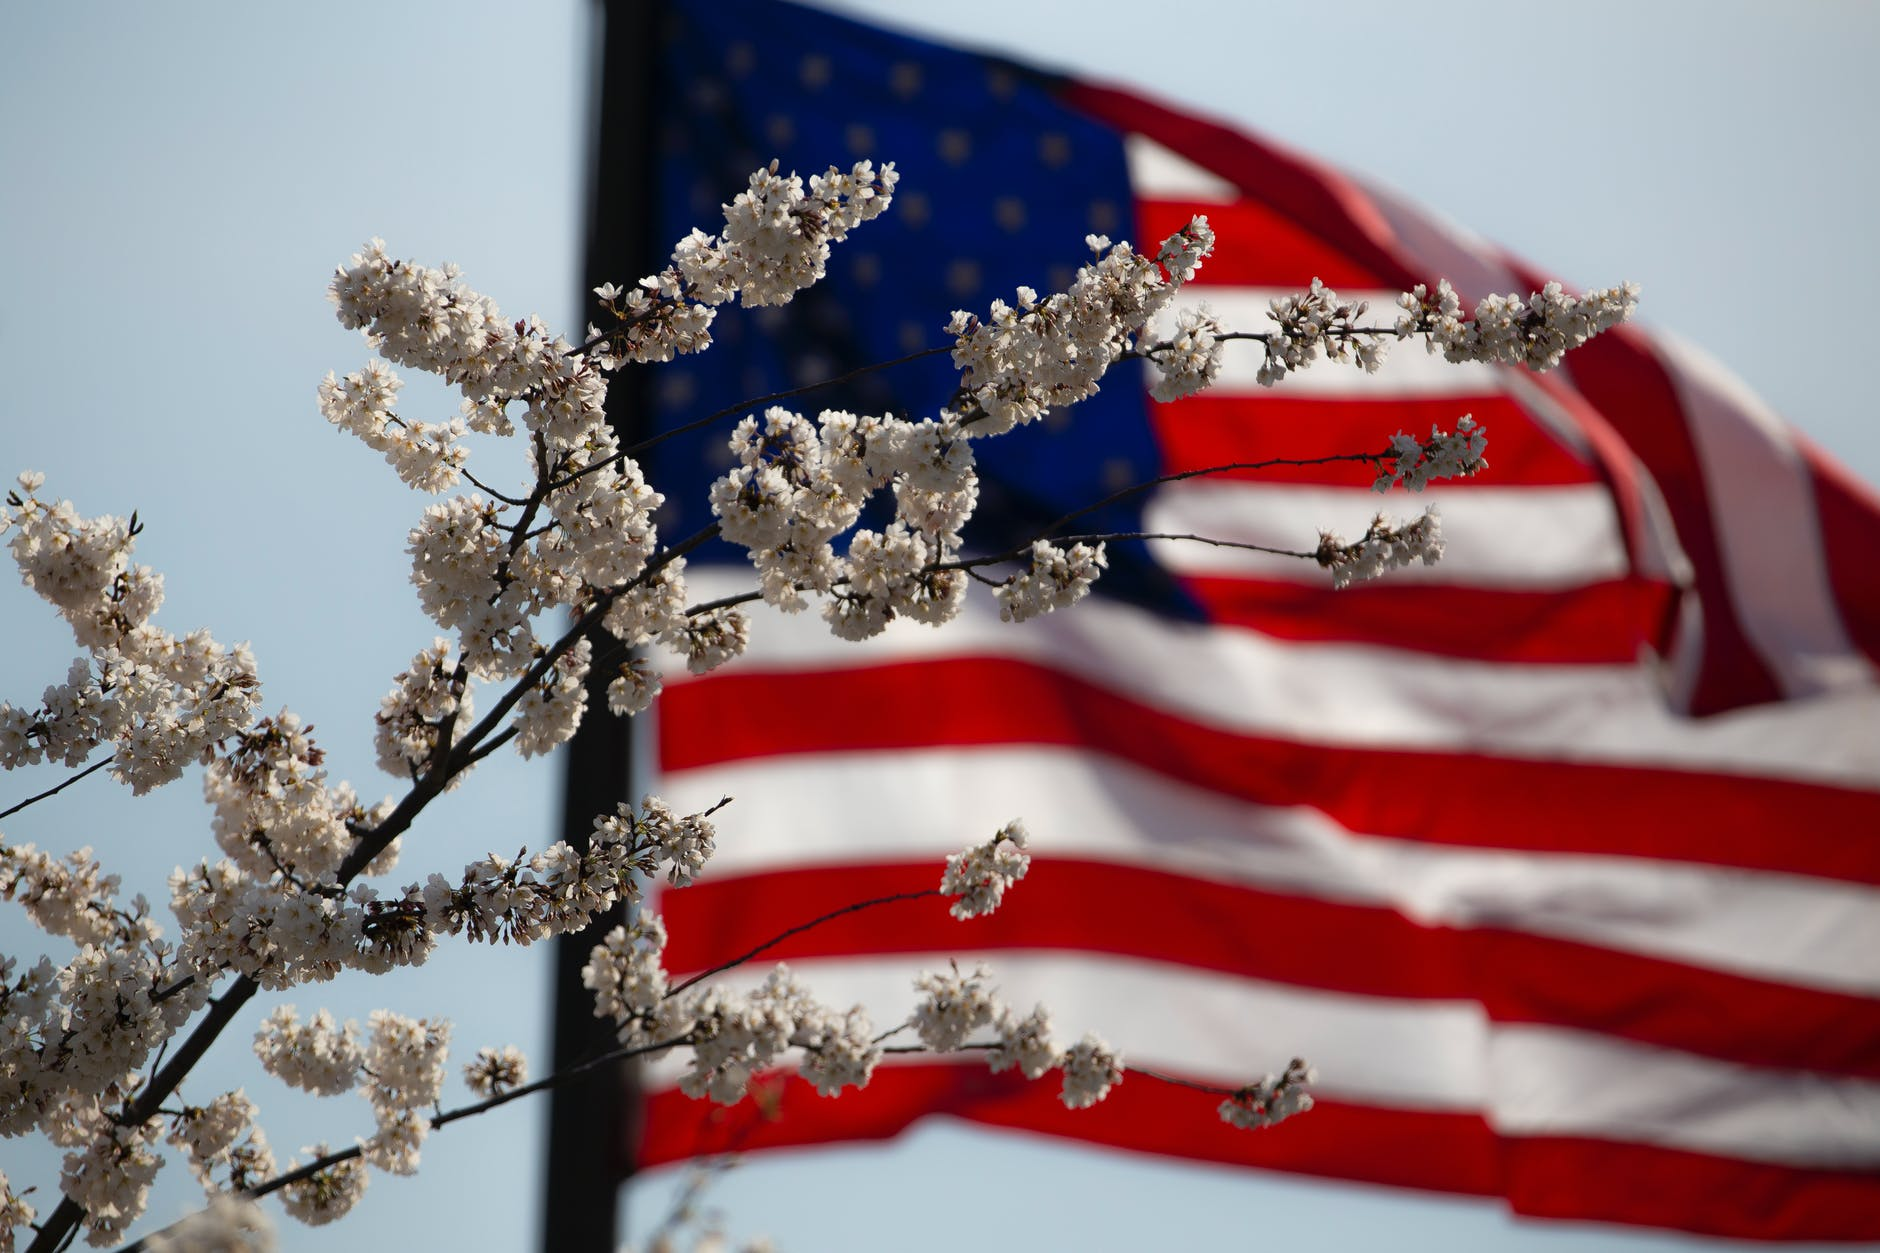 When is Memorial Day celebrated?